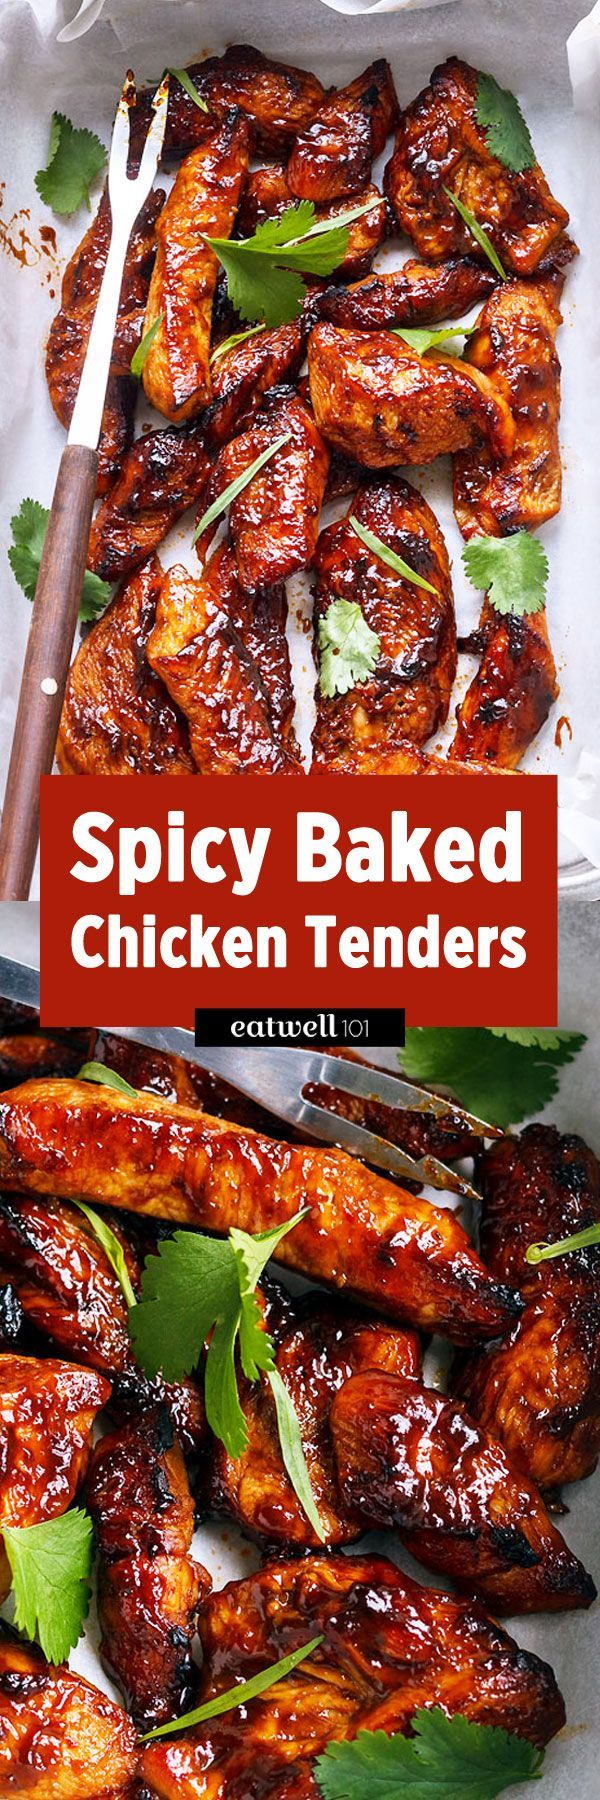 . Chicken strips are marinated in a sweet and spicy sauce, then baked ...